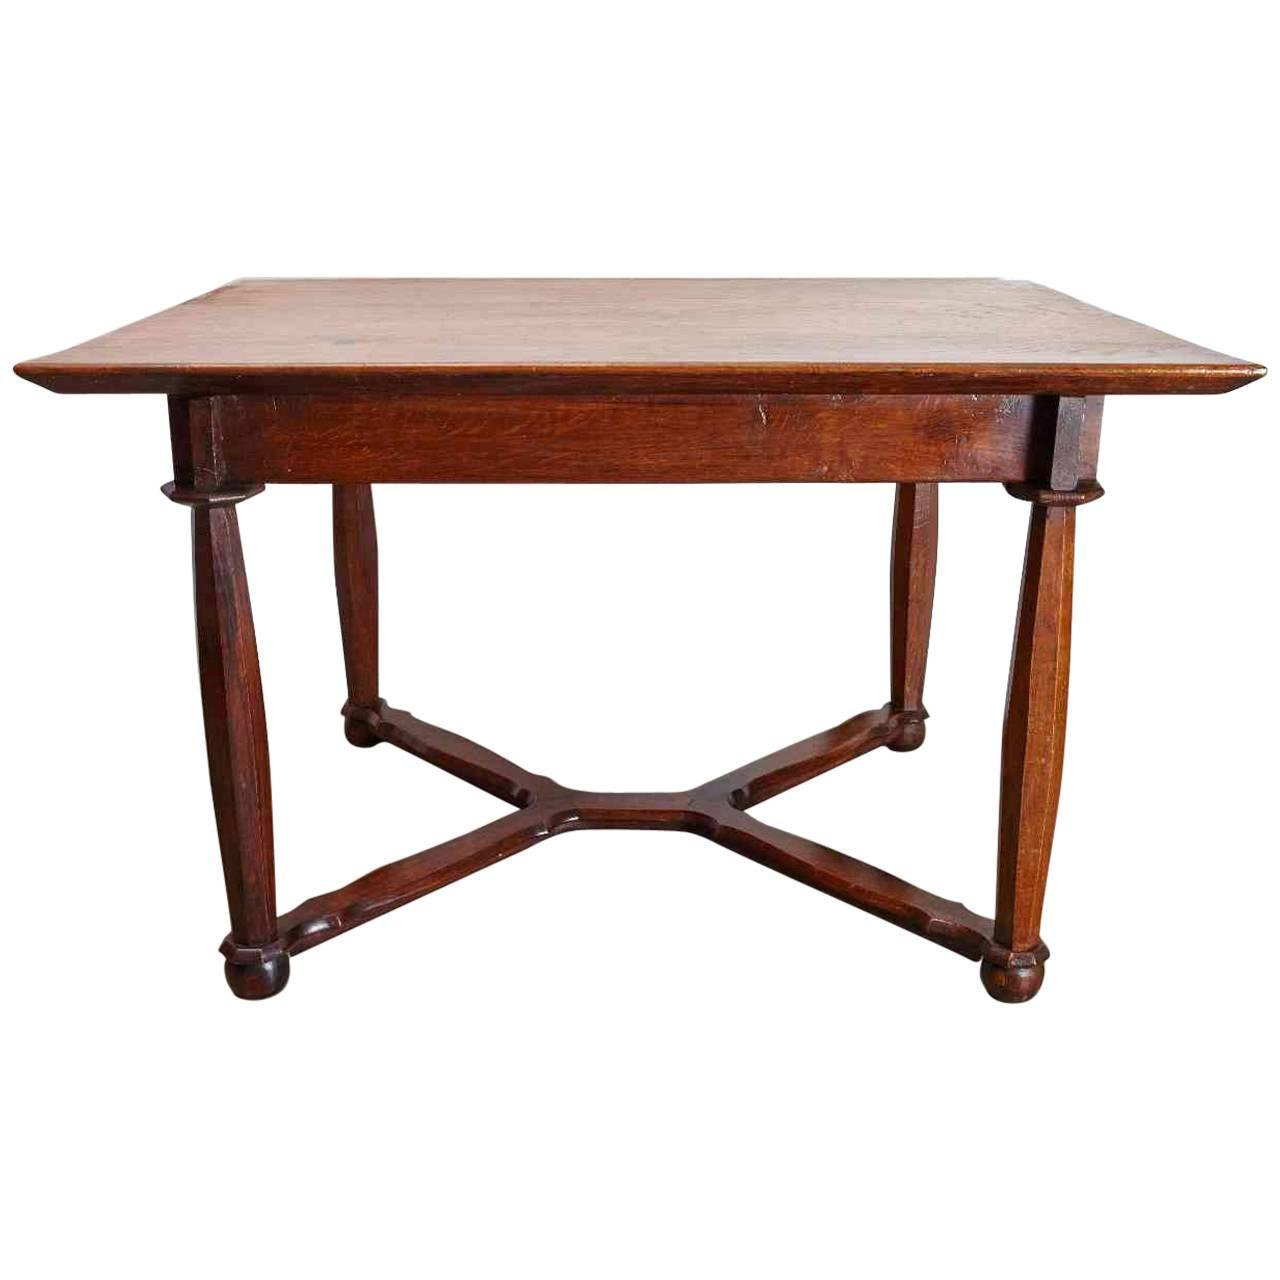 Wonderful image of 19th Century Oak Hall or Dining Table For Sale at 1stdibs with #723421 color and 1280x1280 pixels